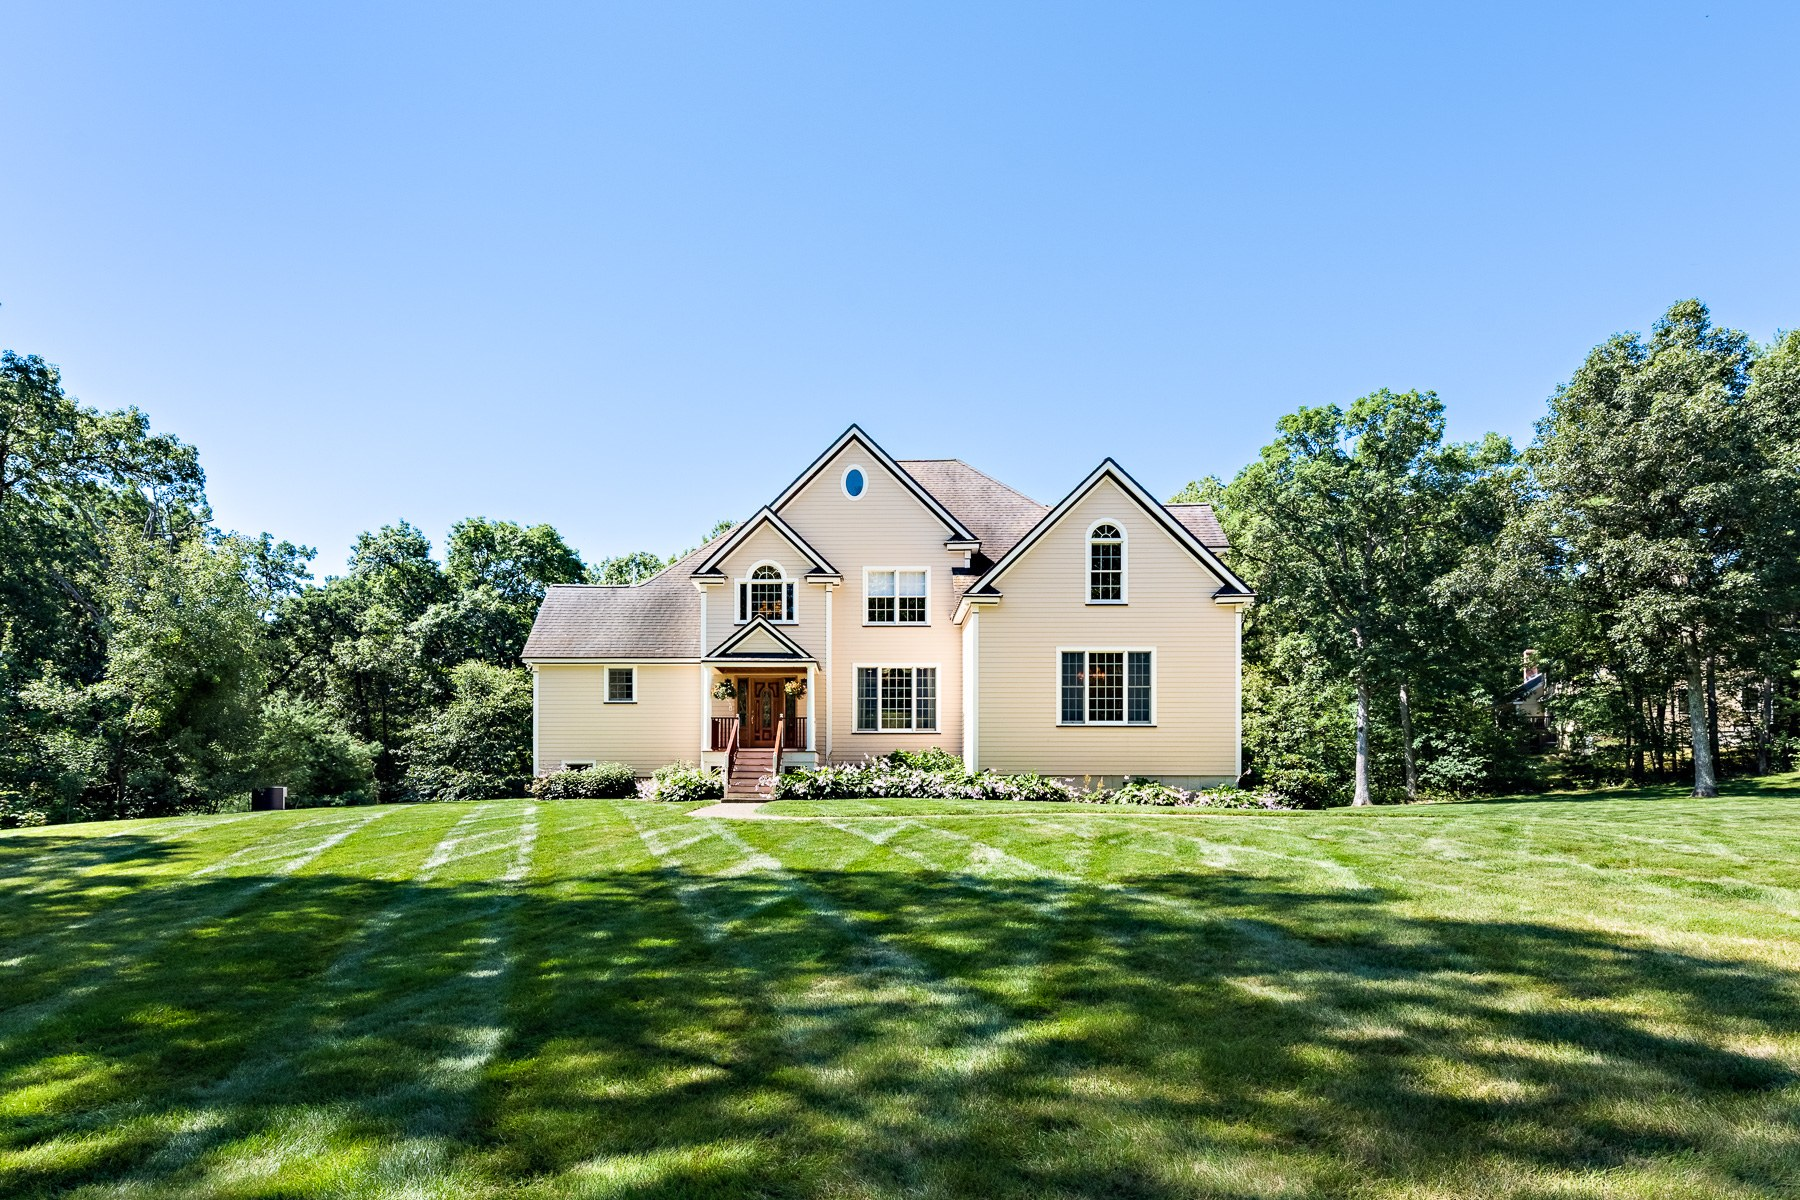 Single Family Home for Active at 47 Hudson Rd, Bolton, MA 47 Hudson Rd Bolton, Massachusetts 01740 United States